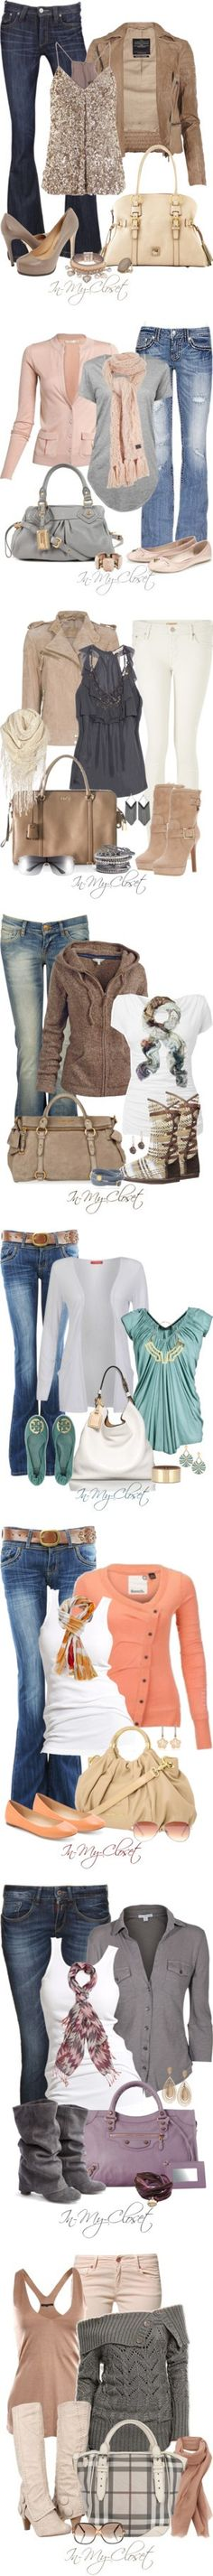 """""""My Favorite Things"""" by in-my-closet on"""